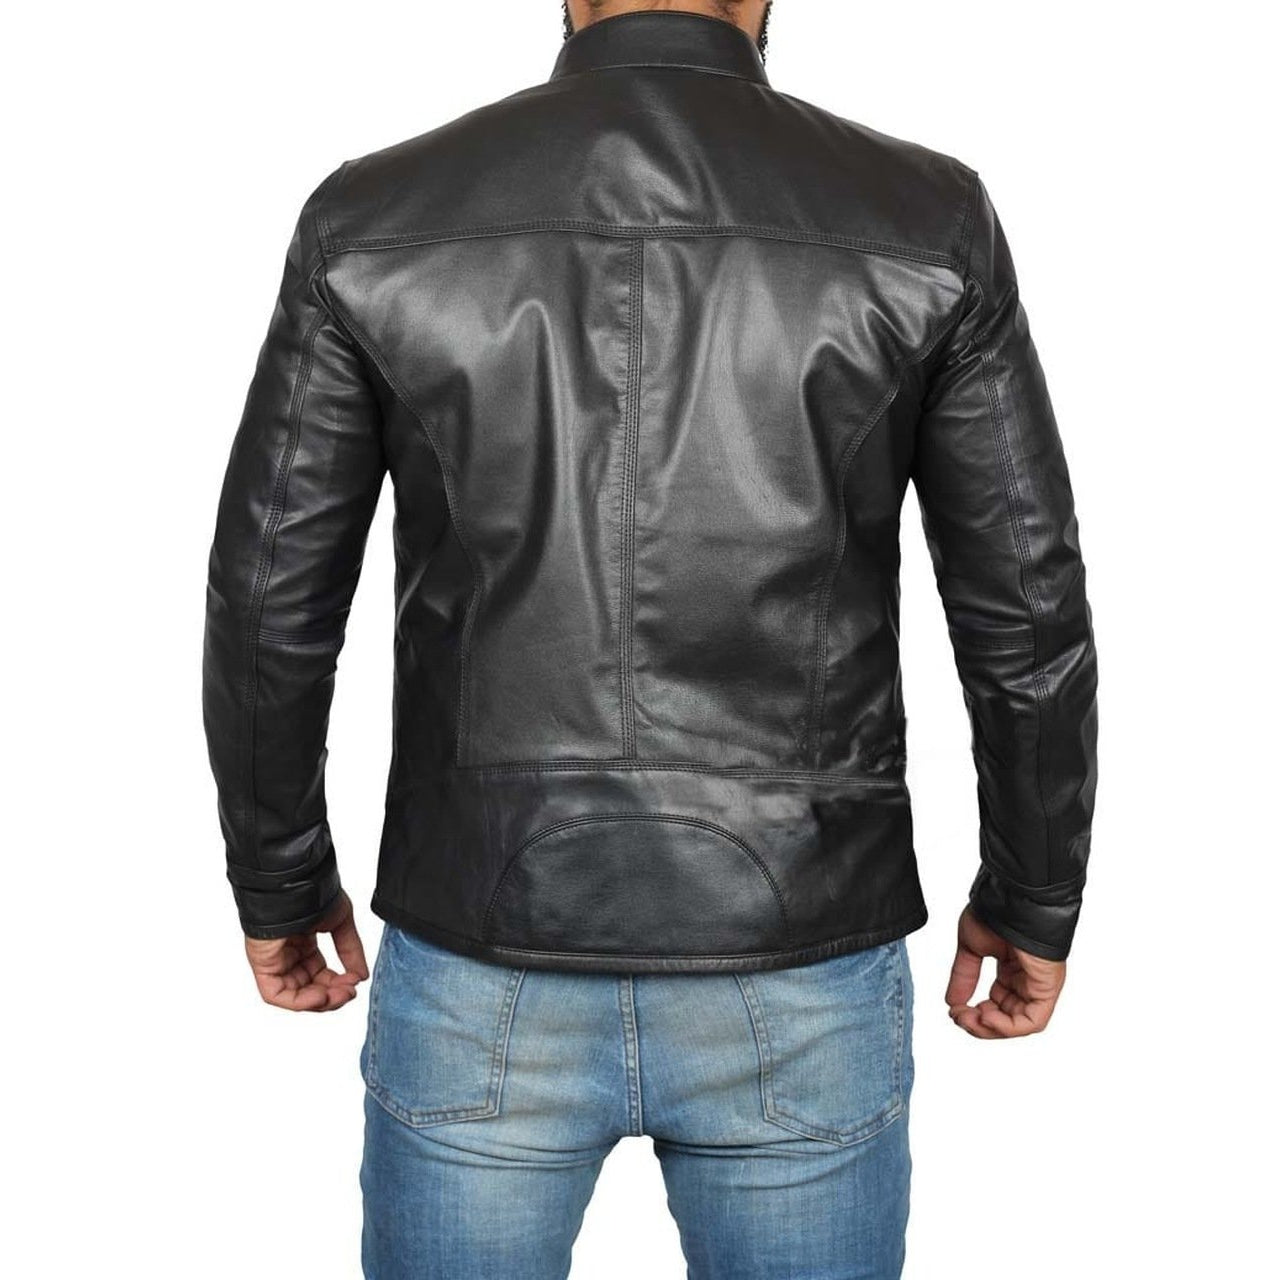 Men Black Genuine Leather Jacket - Leather Jacket